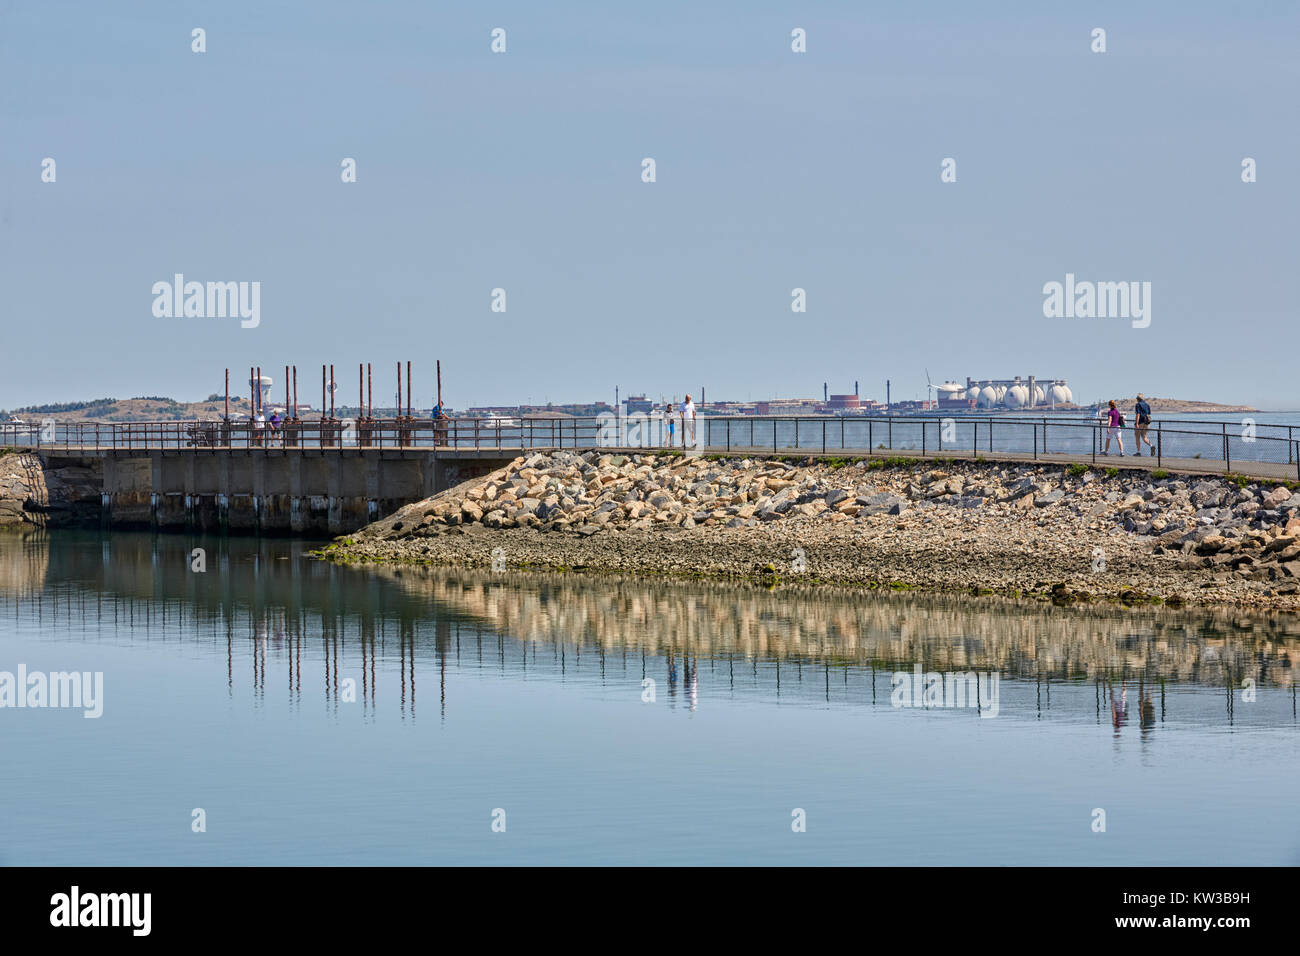 Pleasure Bay sluice, Castle Island, South Boston, Massachusetts, USA - Stock Image